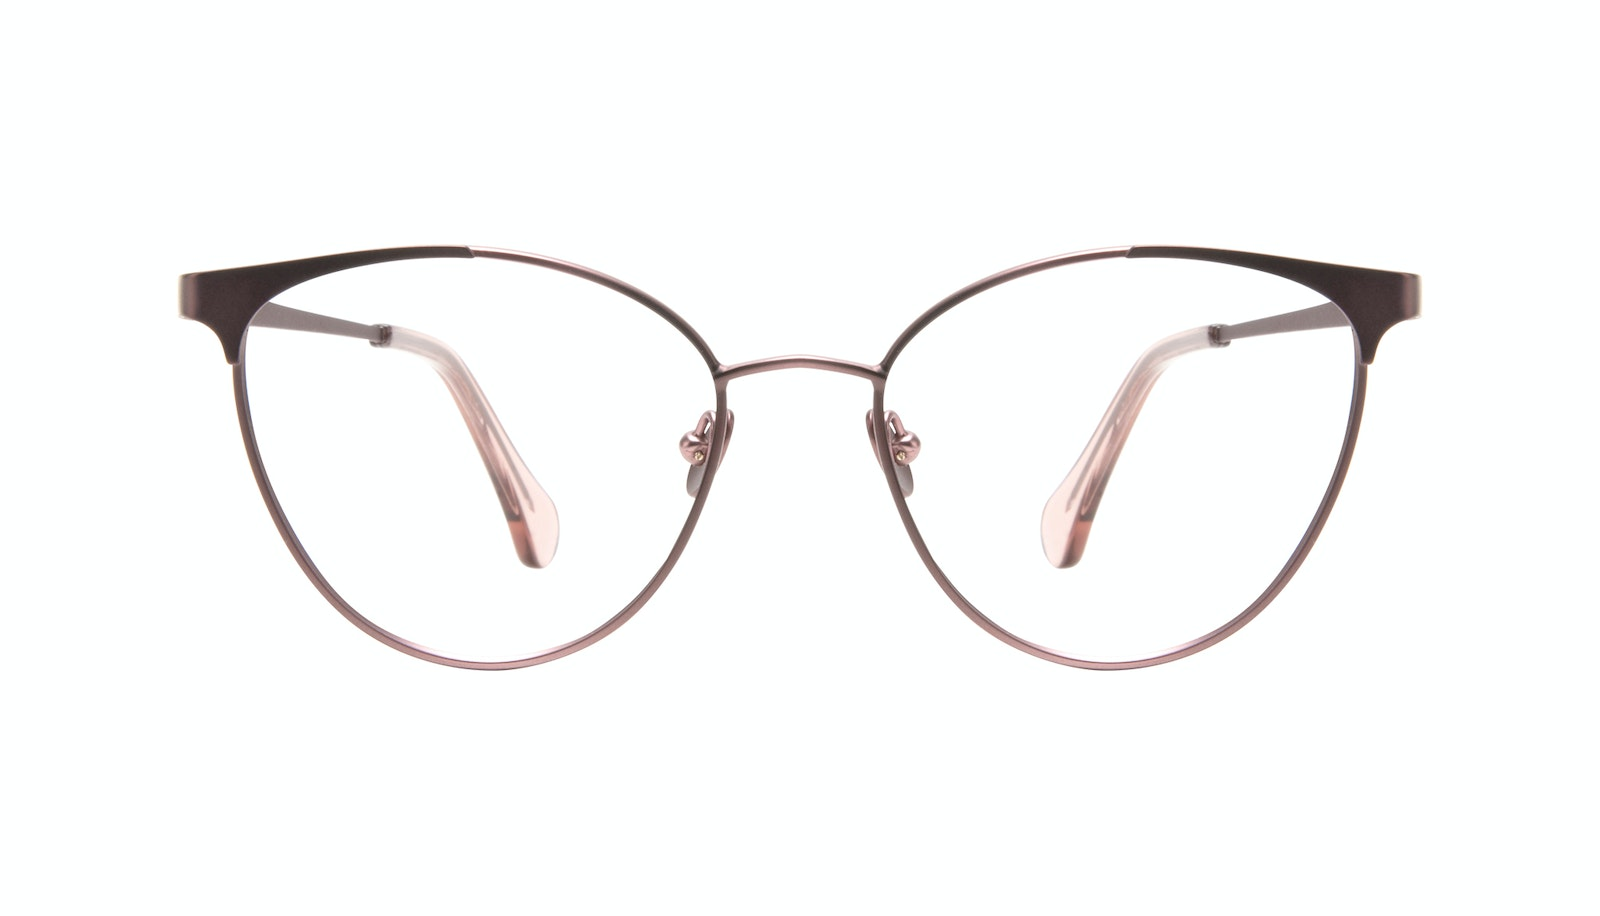 Affordable Fashion Glasses Cat Eye Eyeglasses Women Edgy Pink Terra